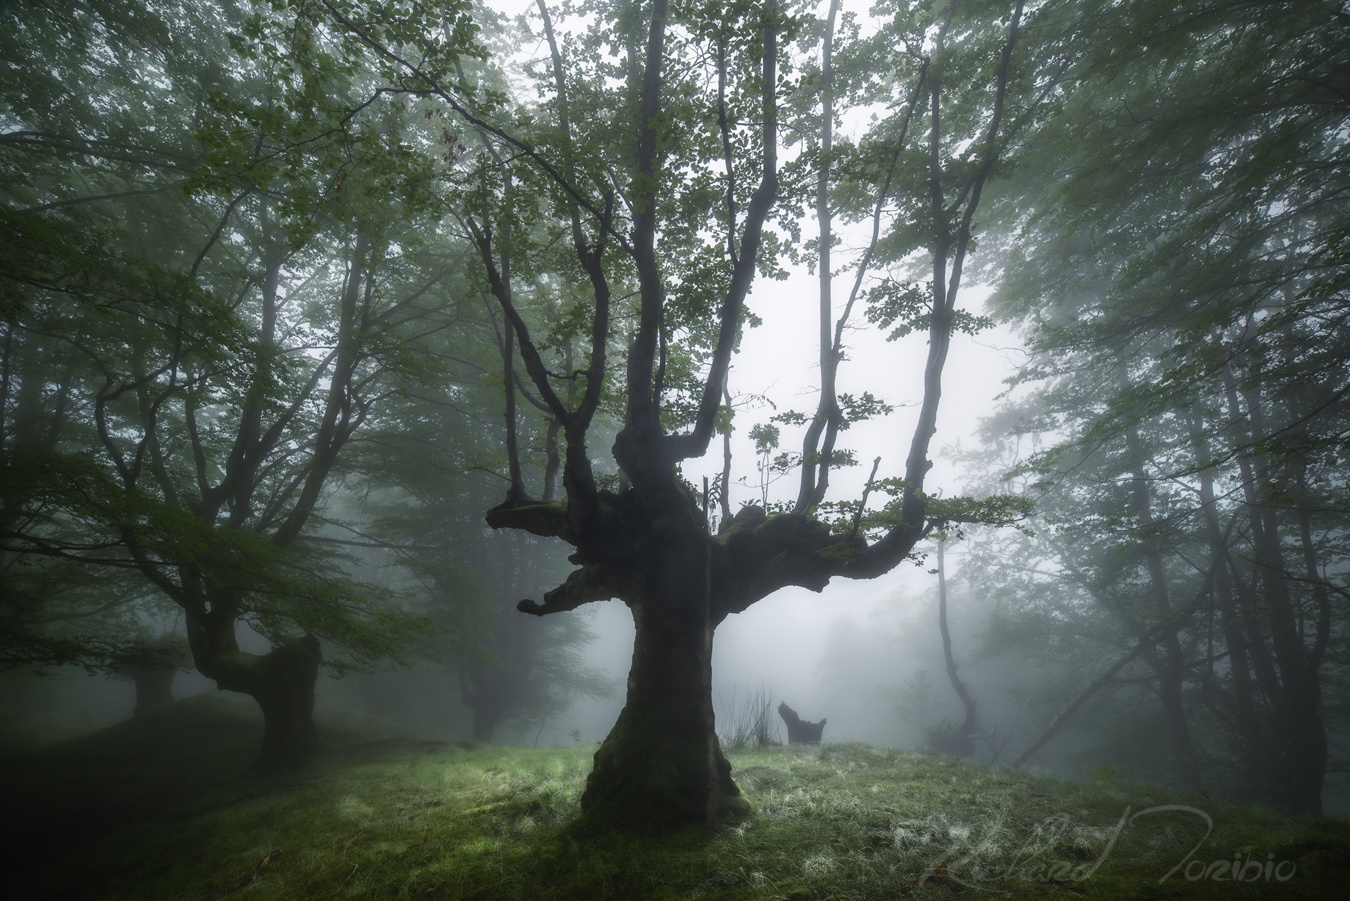 Silhouettes in the fog by richard toribio casares